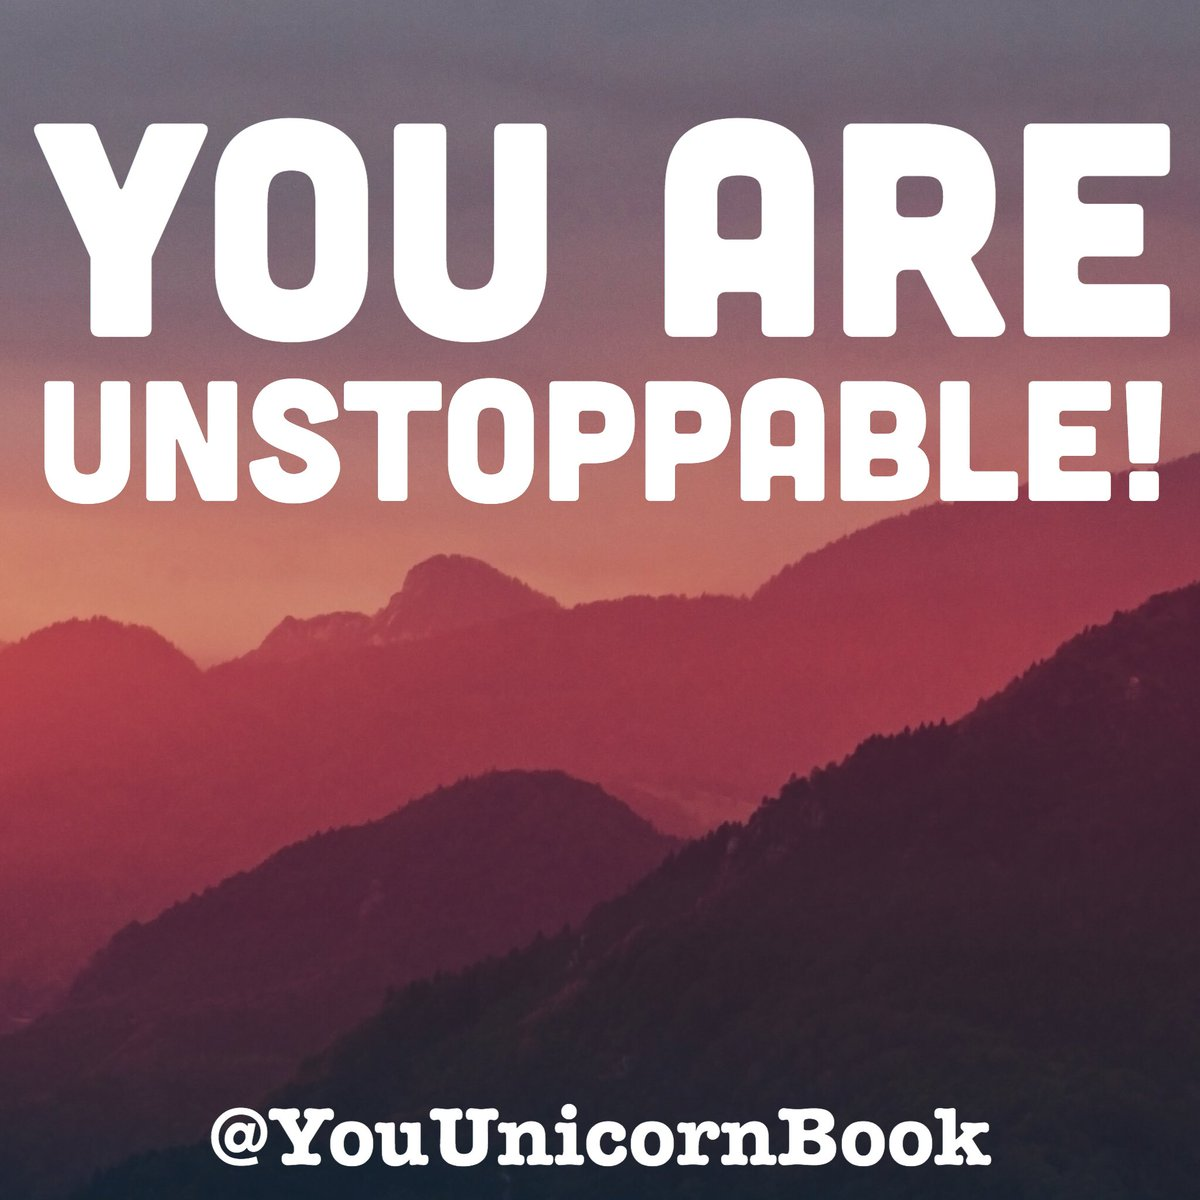 You are unstoppable  #youareaunicornbook #positivity #mindfulness #happiness #journal #youareaunicorn #amazon #VincentVincent #unicorn<br>http://pic.twitter.com/XpwgDj9jzF